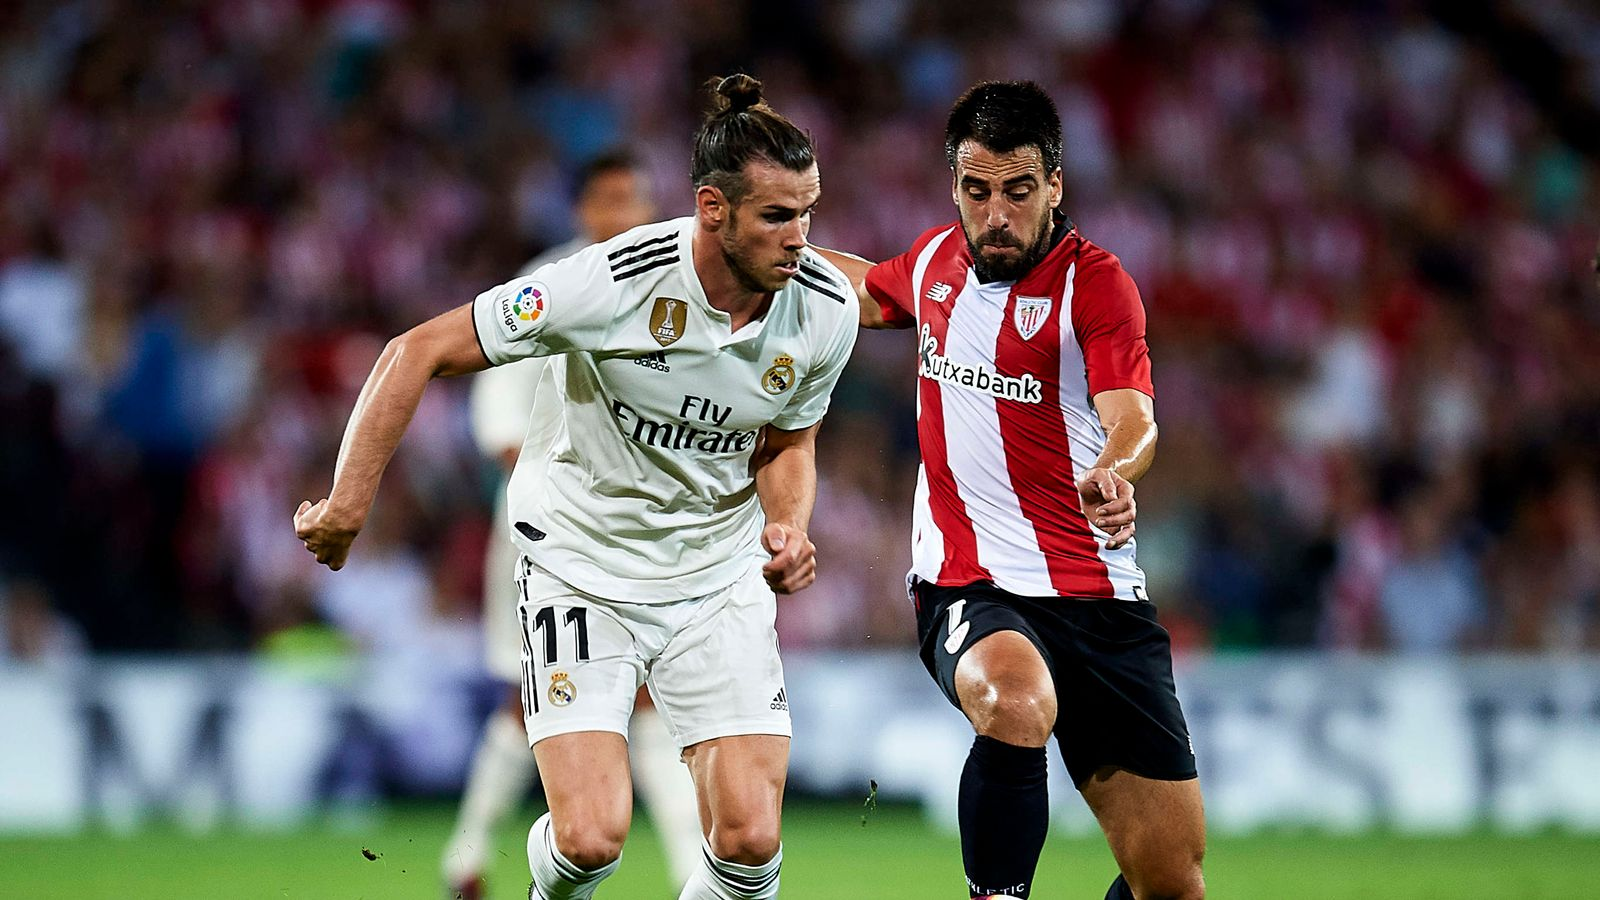 Sofa Score Real Madrid Barcelona Ath Bilbao 1 1 R Madrid Match Report Highlights